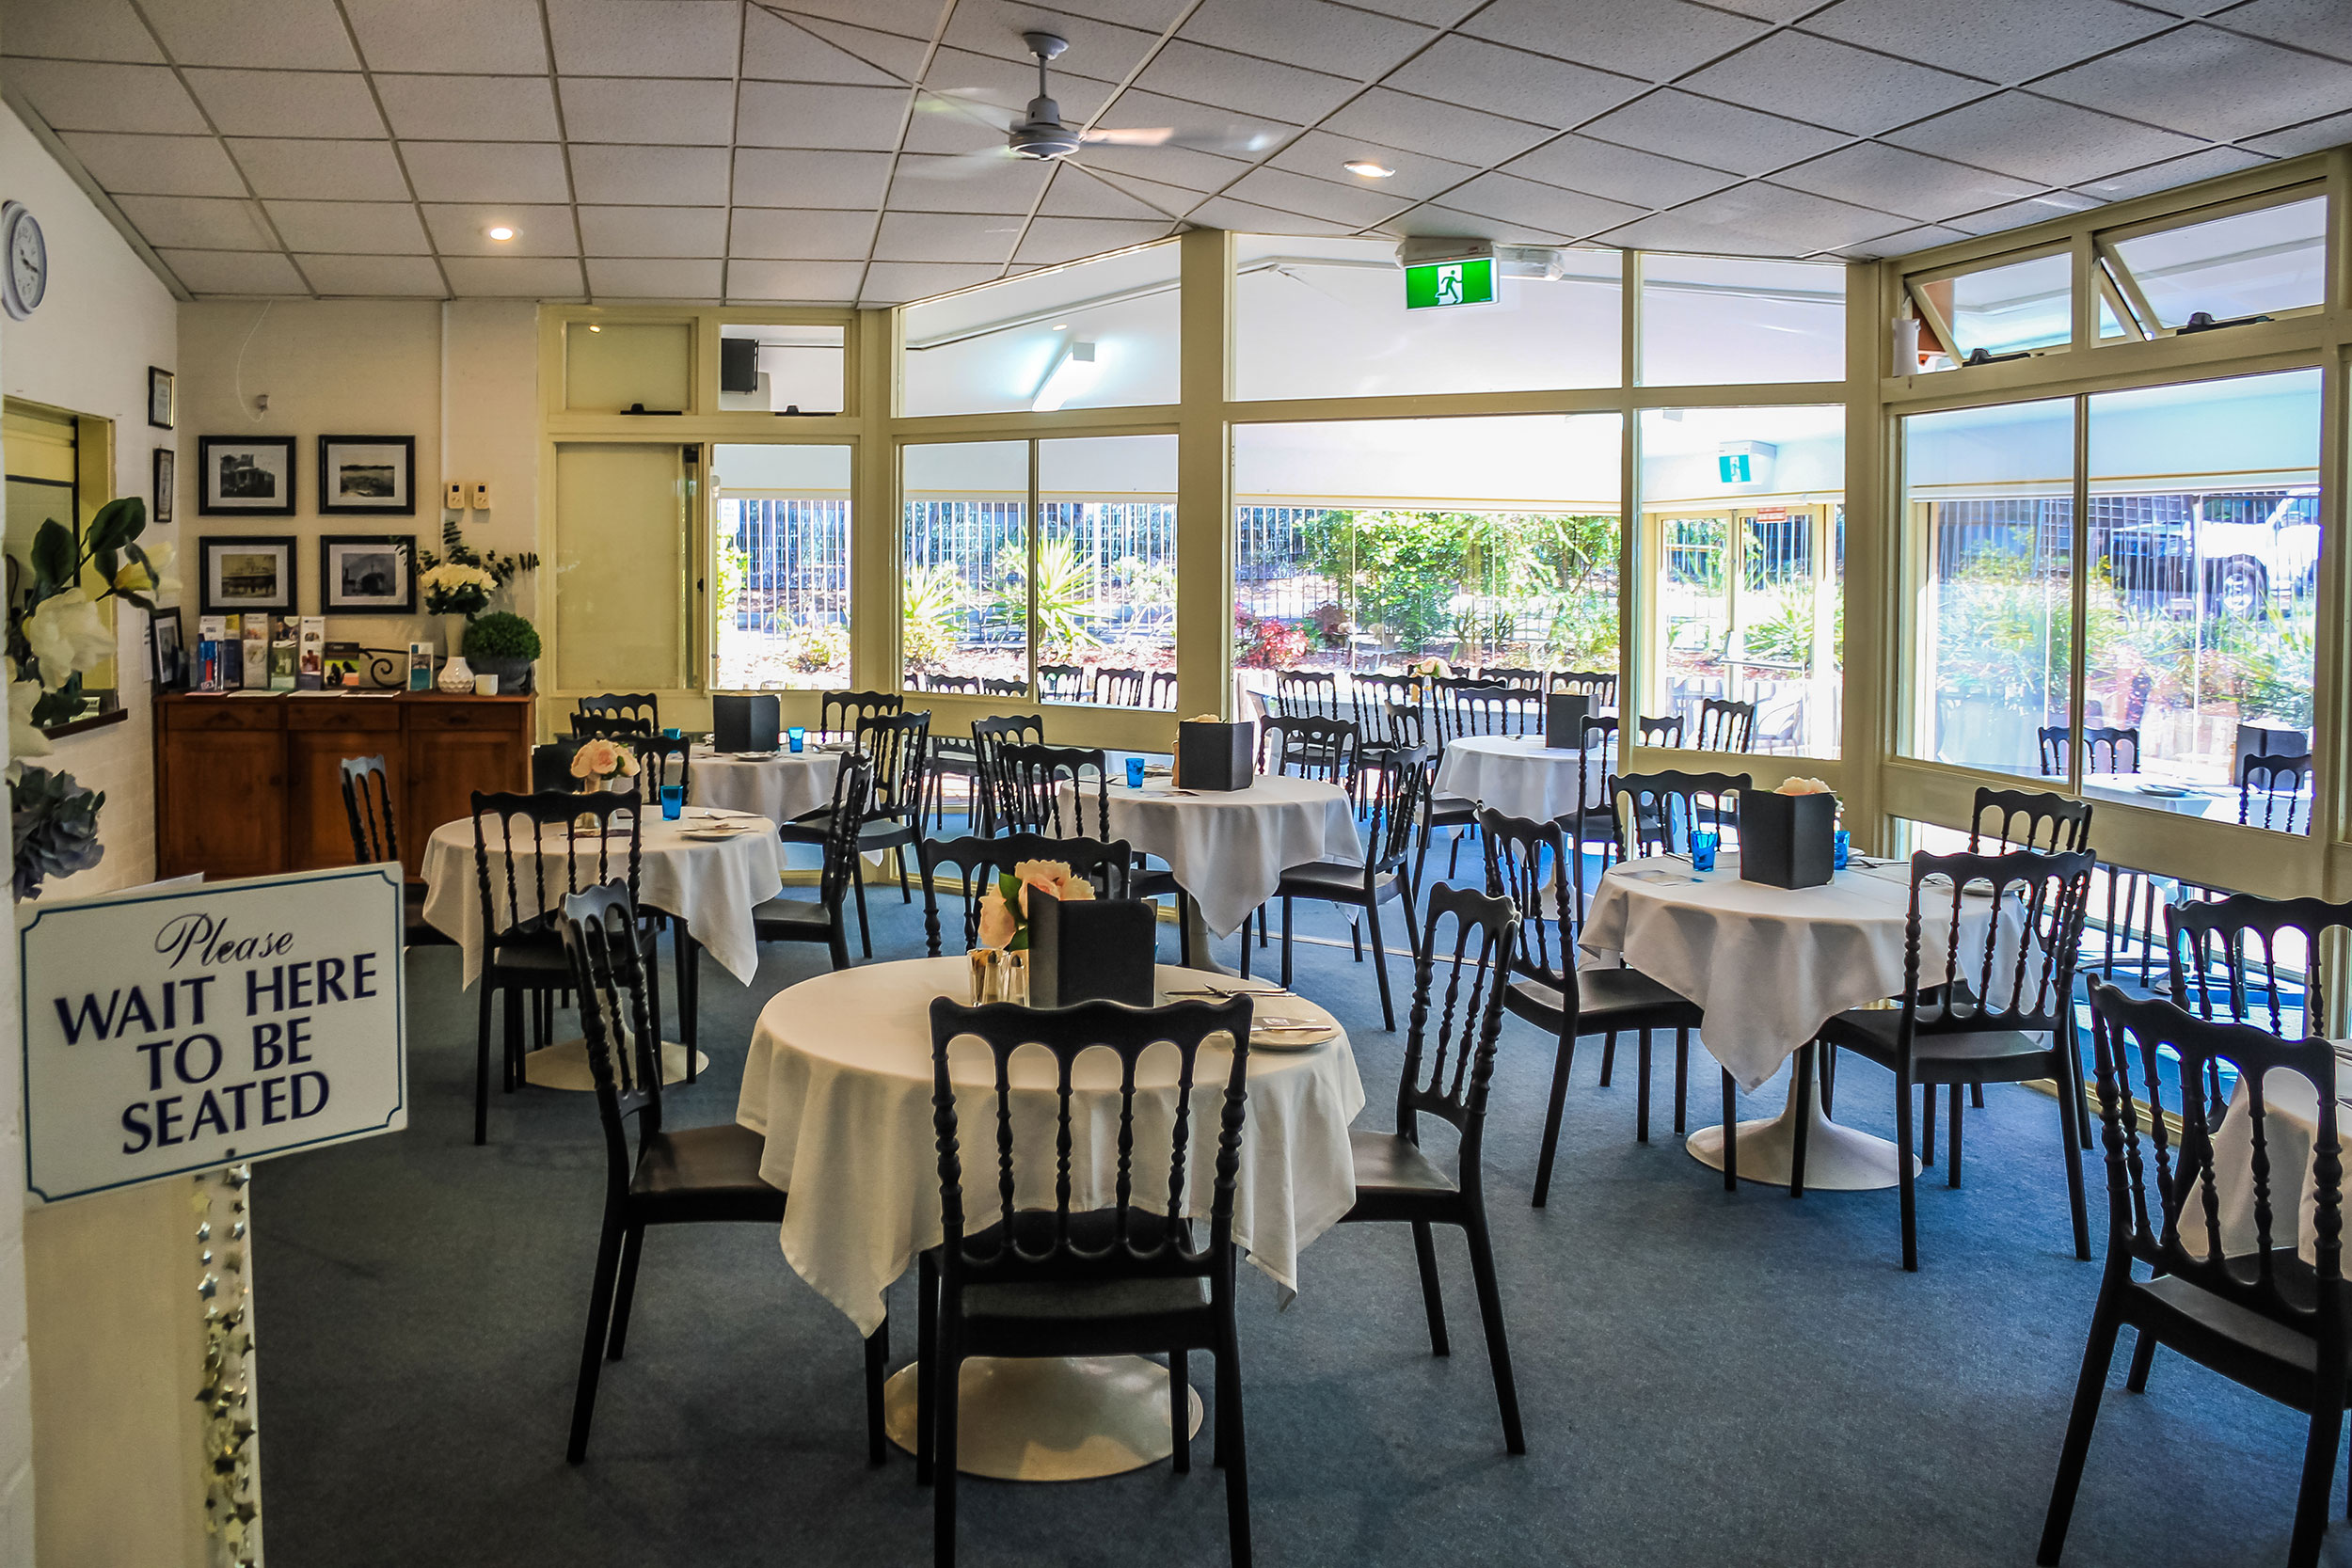 Name : Karimbla Restaurant – Miranda, NSW